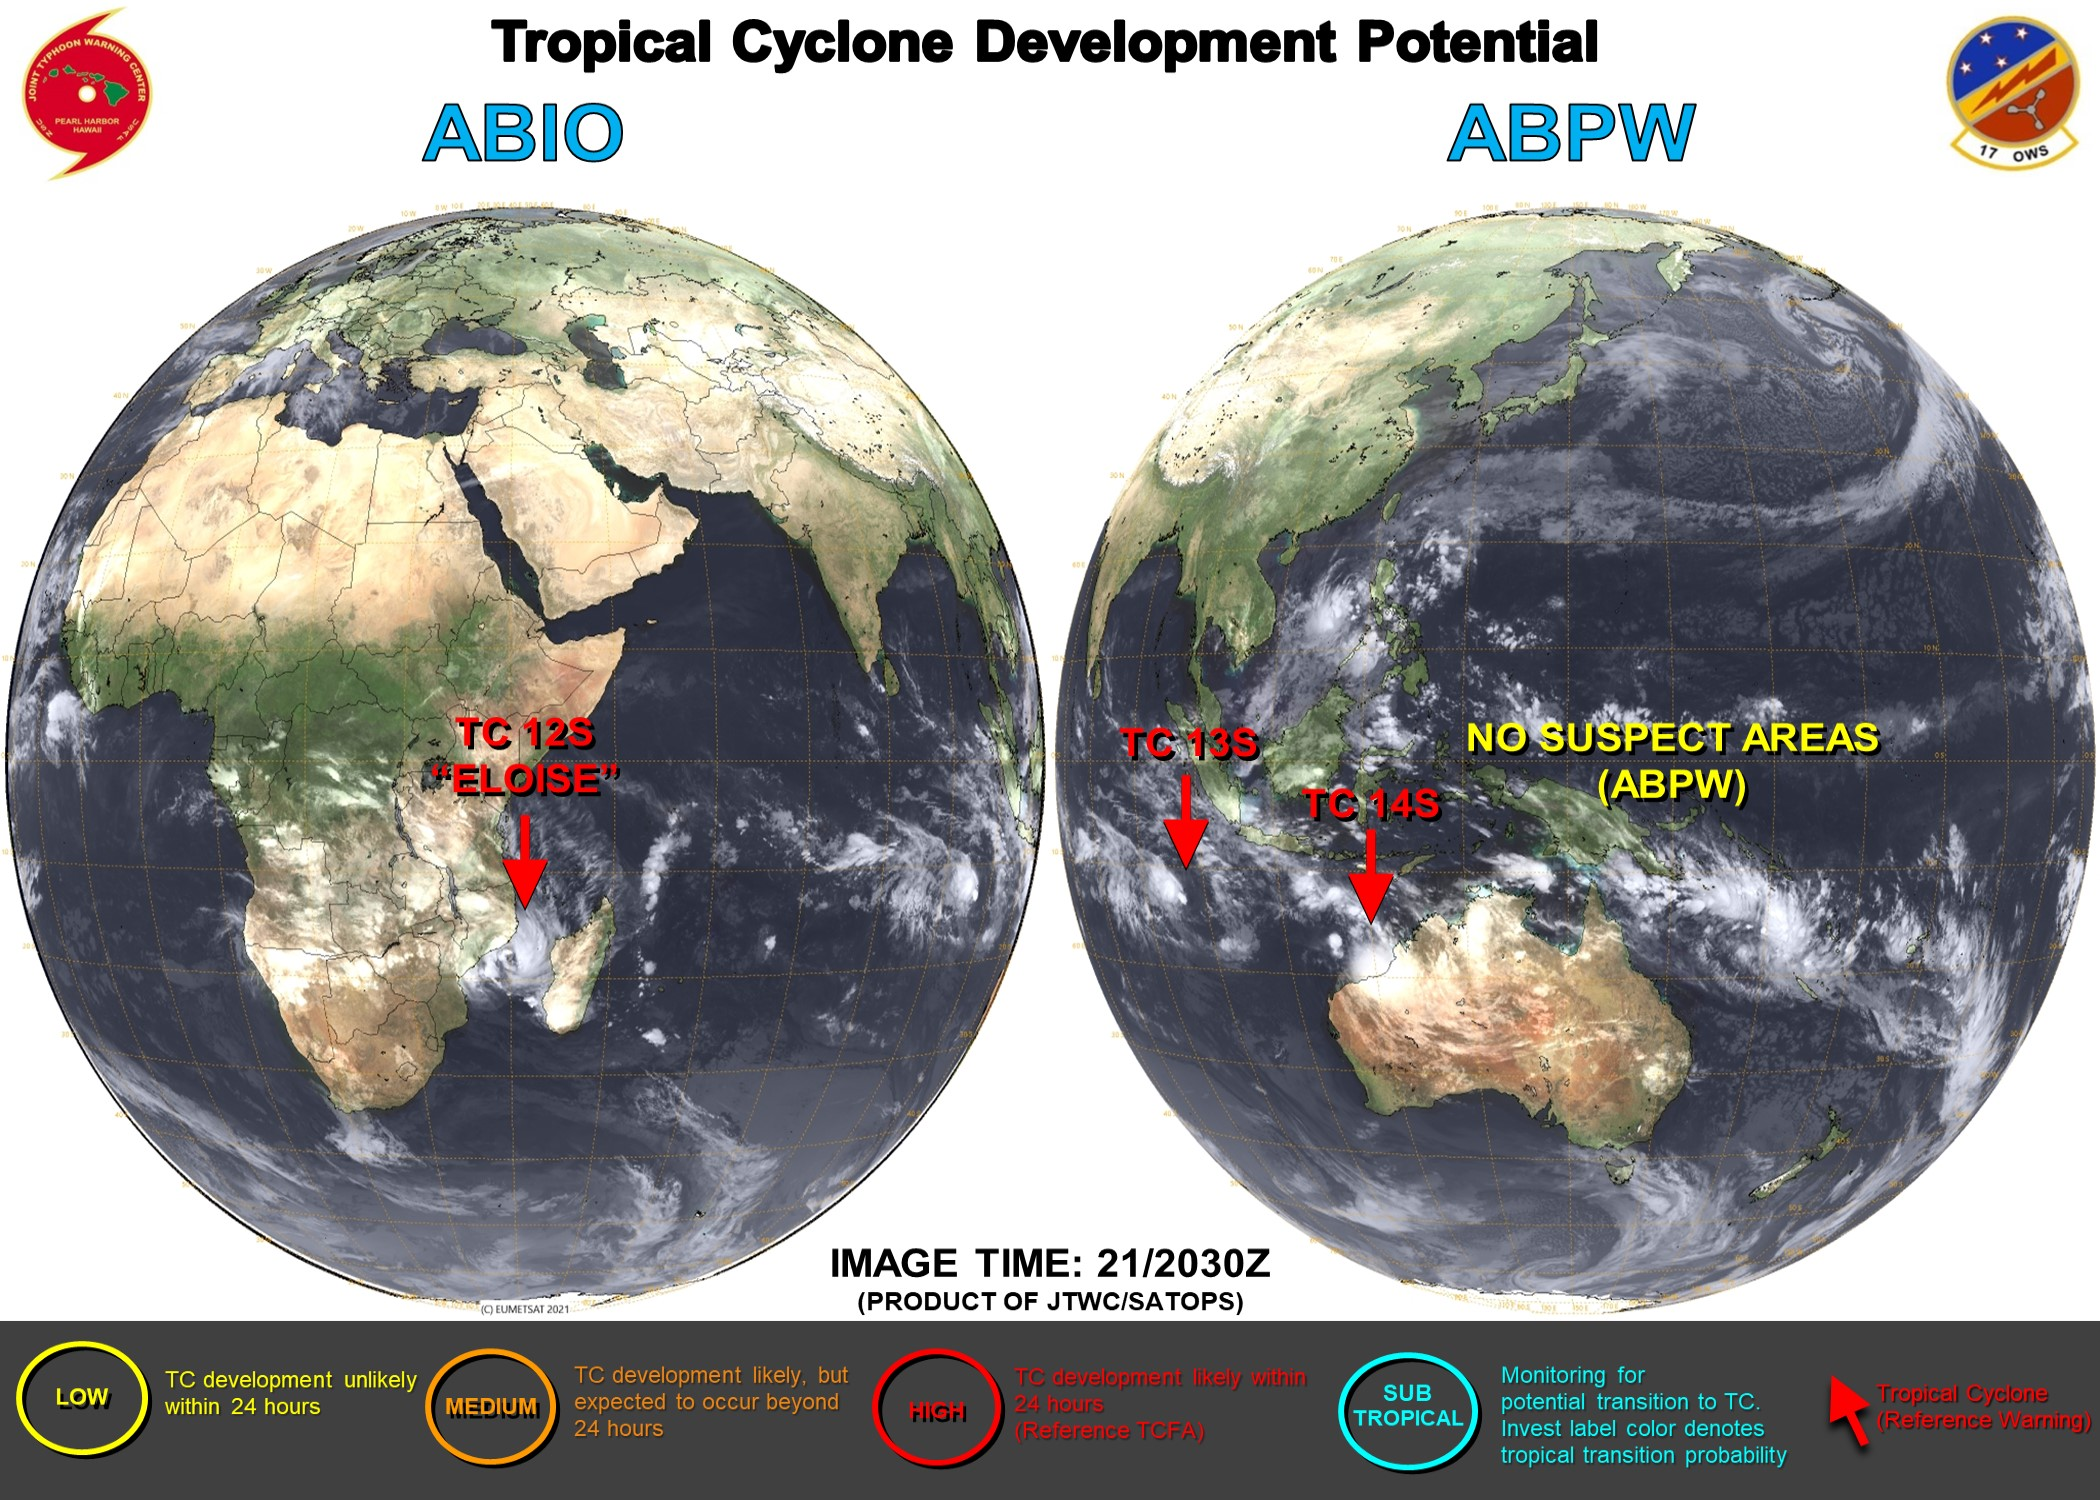 21/2030UTC. THE JTWC IS ISSUING 6HOURY WARNINGS ON 14S(NONAME) AND 12HOURLY WARNINGS ON 12S(ELOISE) AND 13S(NONAME). 3 HOURLY SATELLITE BULLETINS ARE PROVIDED FOR THE 3 SYSTEMS.